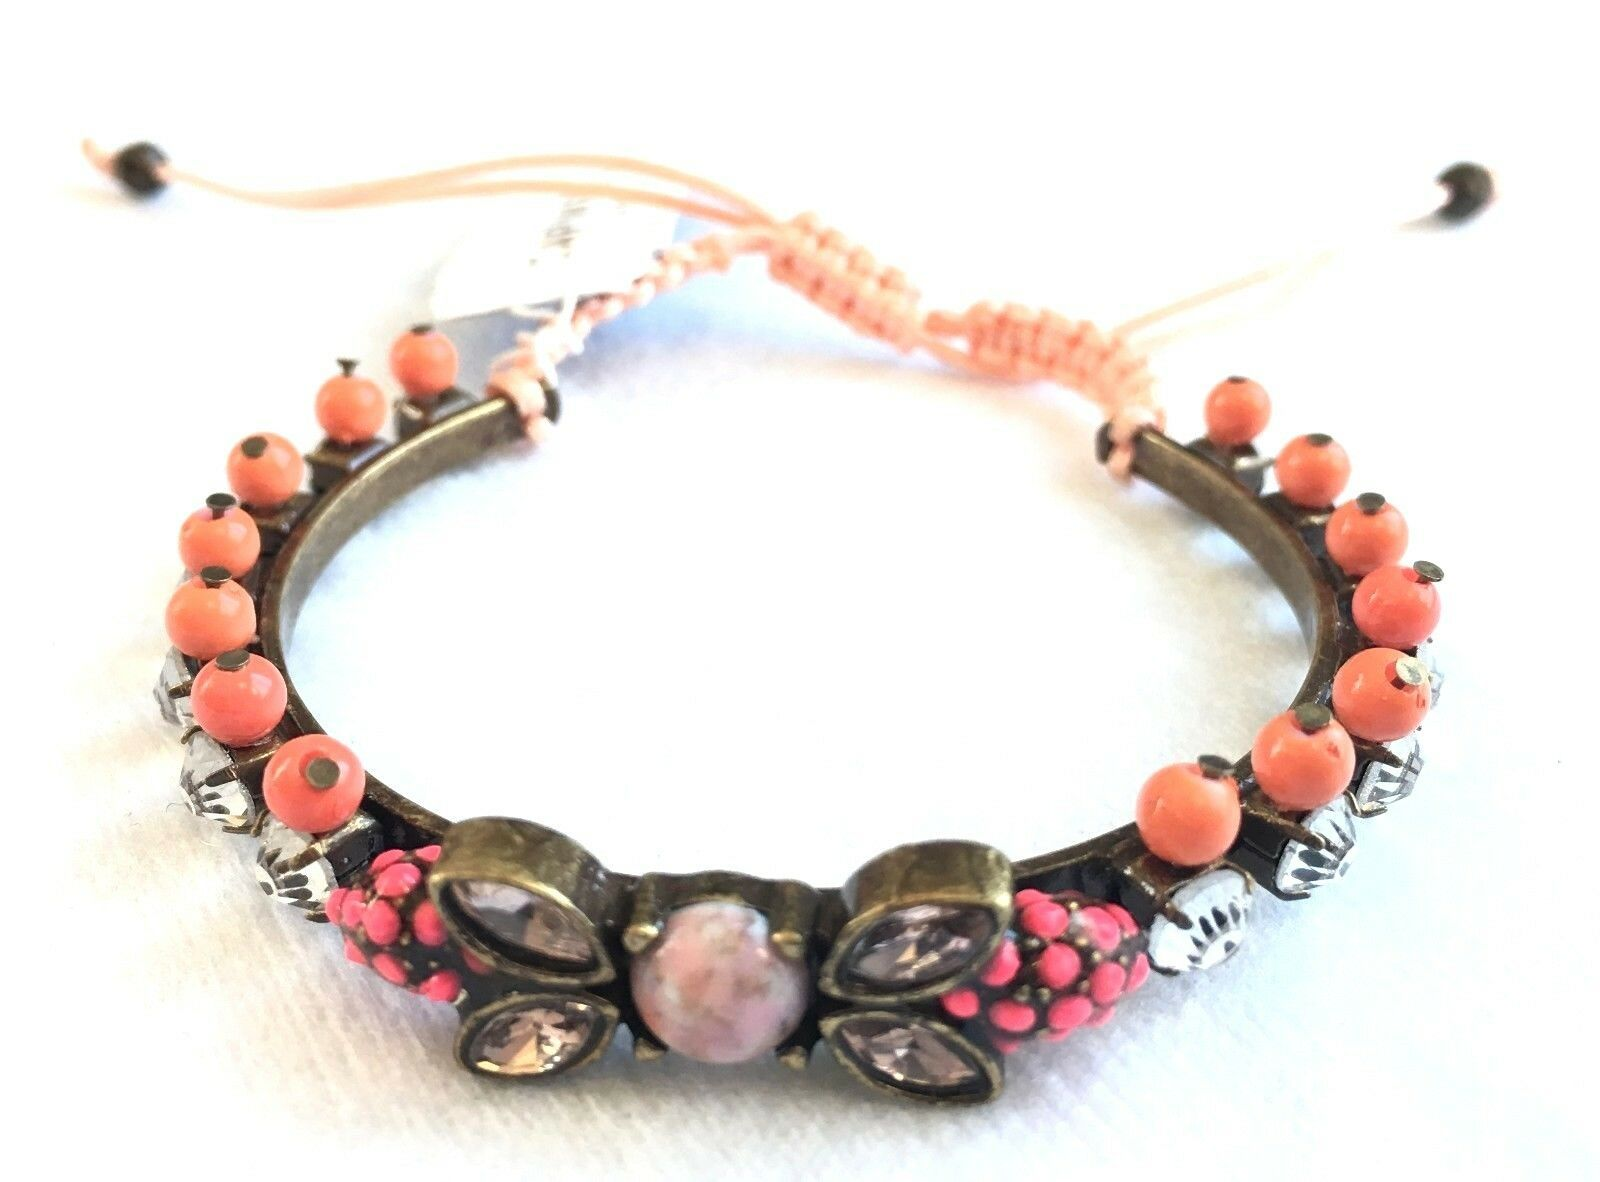 Capwell + Co. On The Bright Side Crystal Beaded Adjustable Bracelet NWT